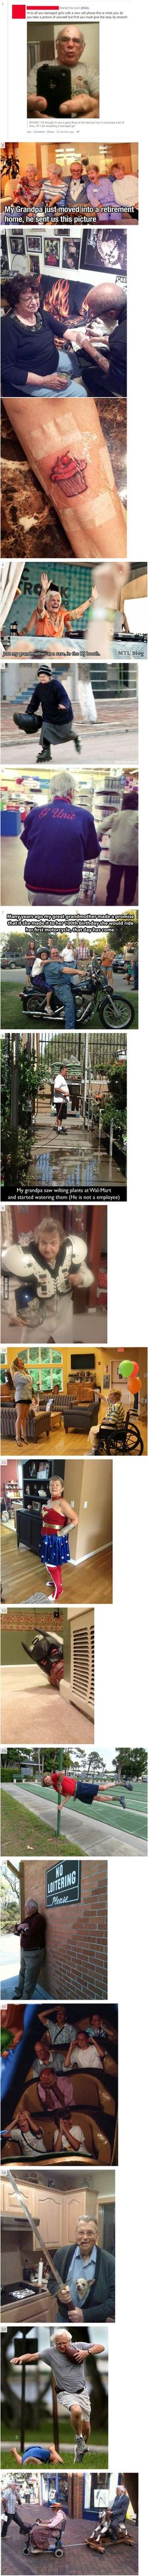 OMG!!!! I hope I am this awesome when I am this old!!!!!